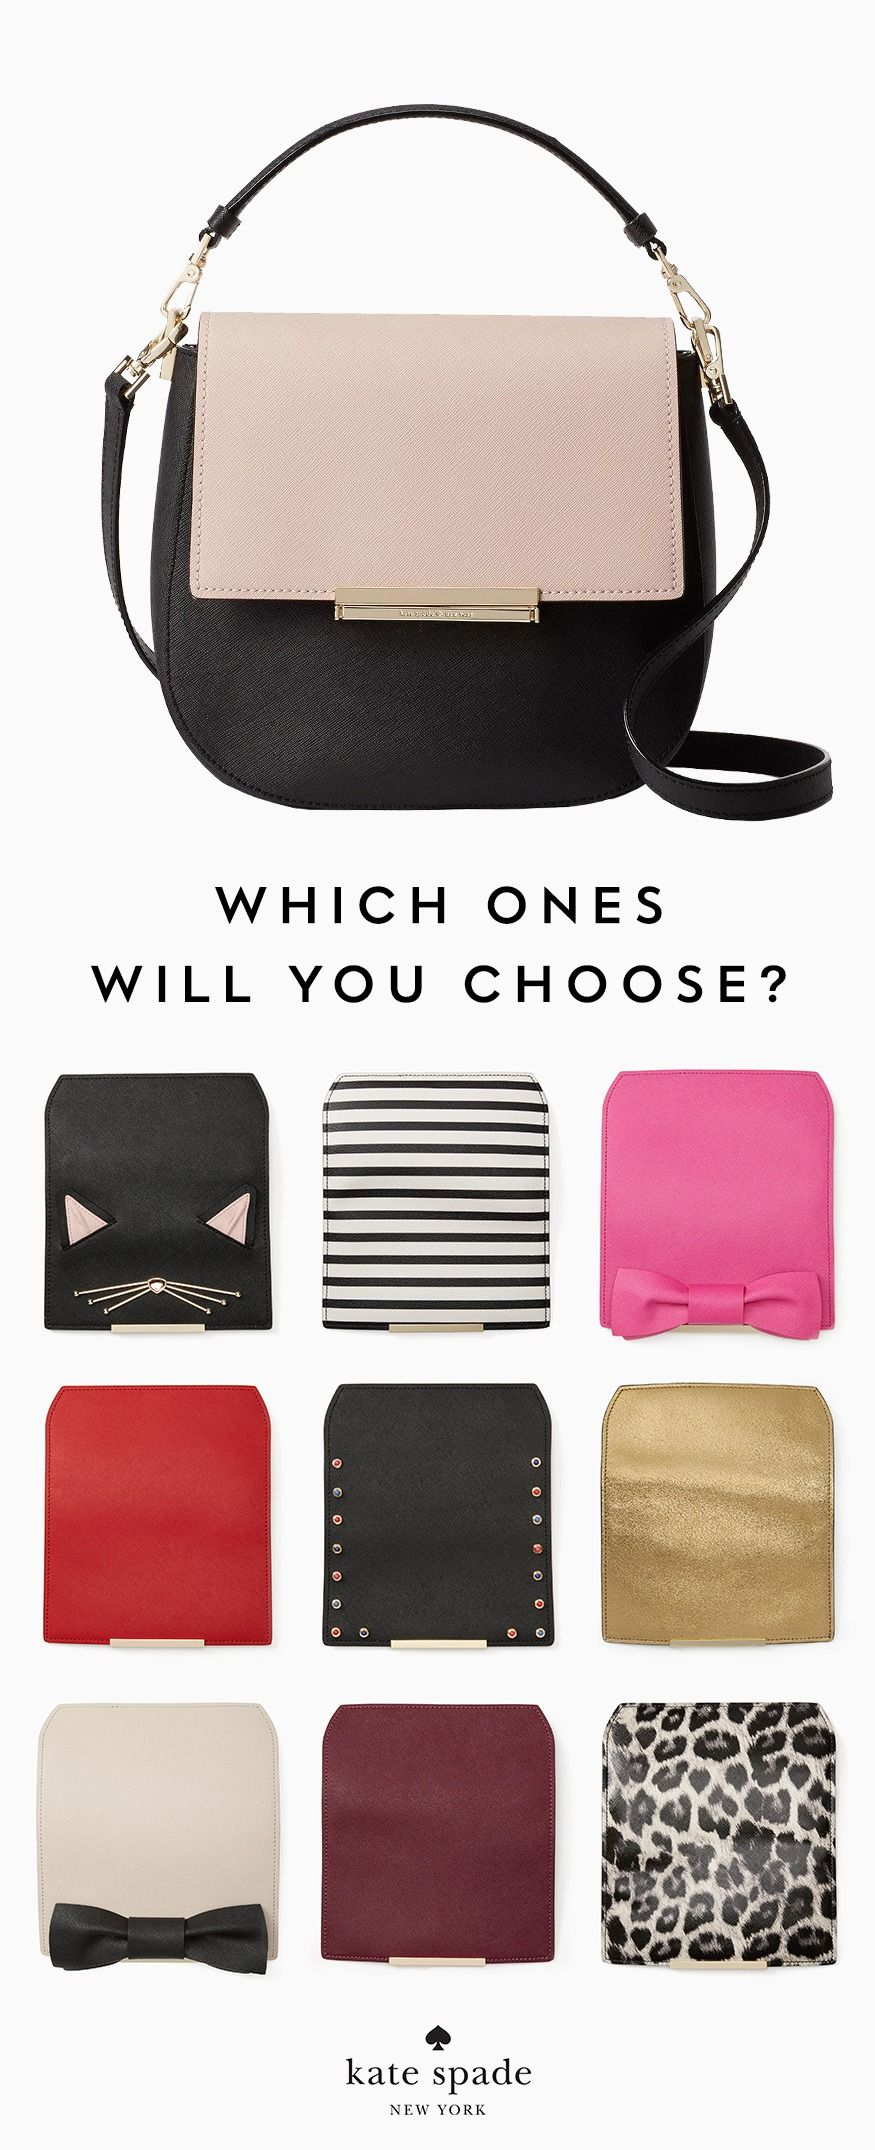 c251fc6129d1 one bag, so. many. options. featuring the make it mine byrdie, with even  more interchangeable flaps. new in the kate spade new york personalization  shop.